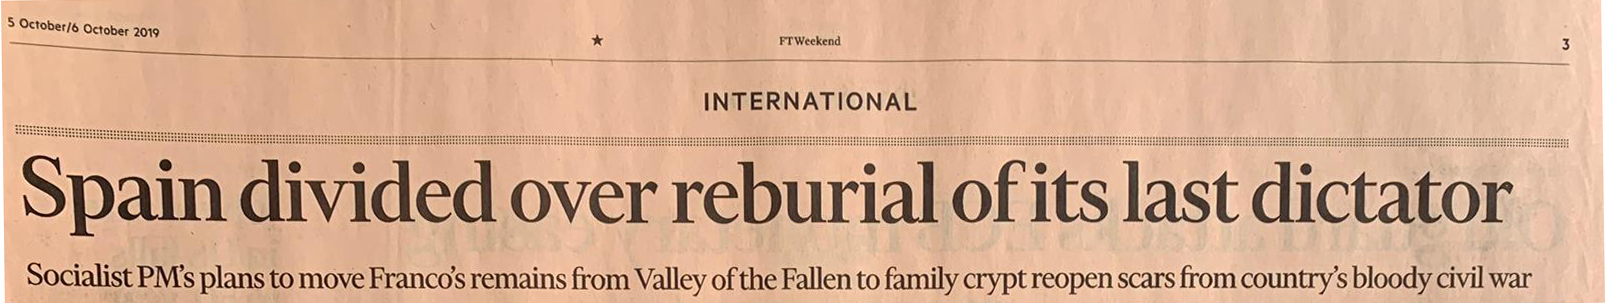 Financial_Times.FNFF.5.10.2019-1